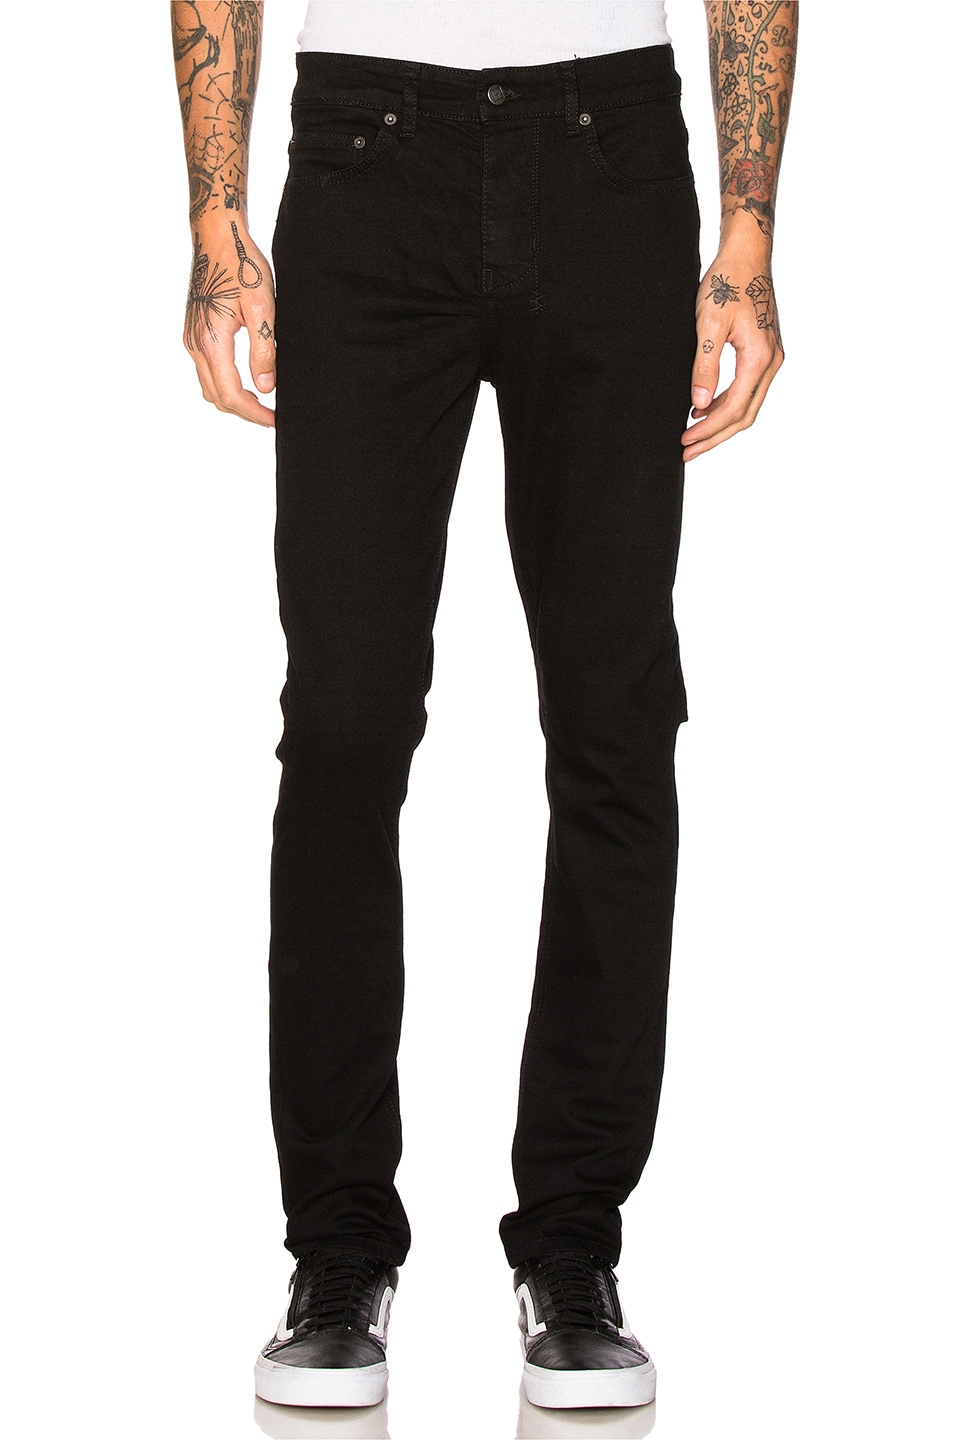 Image 1 of Ksubi Chitch in Laid Black